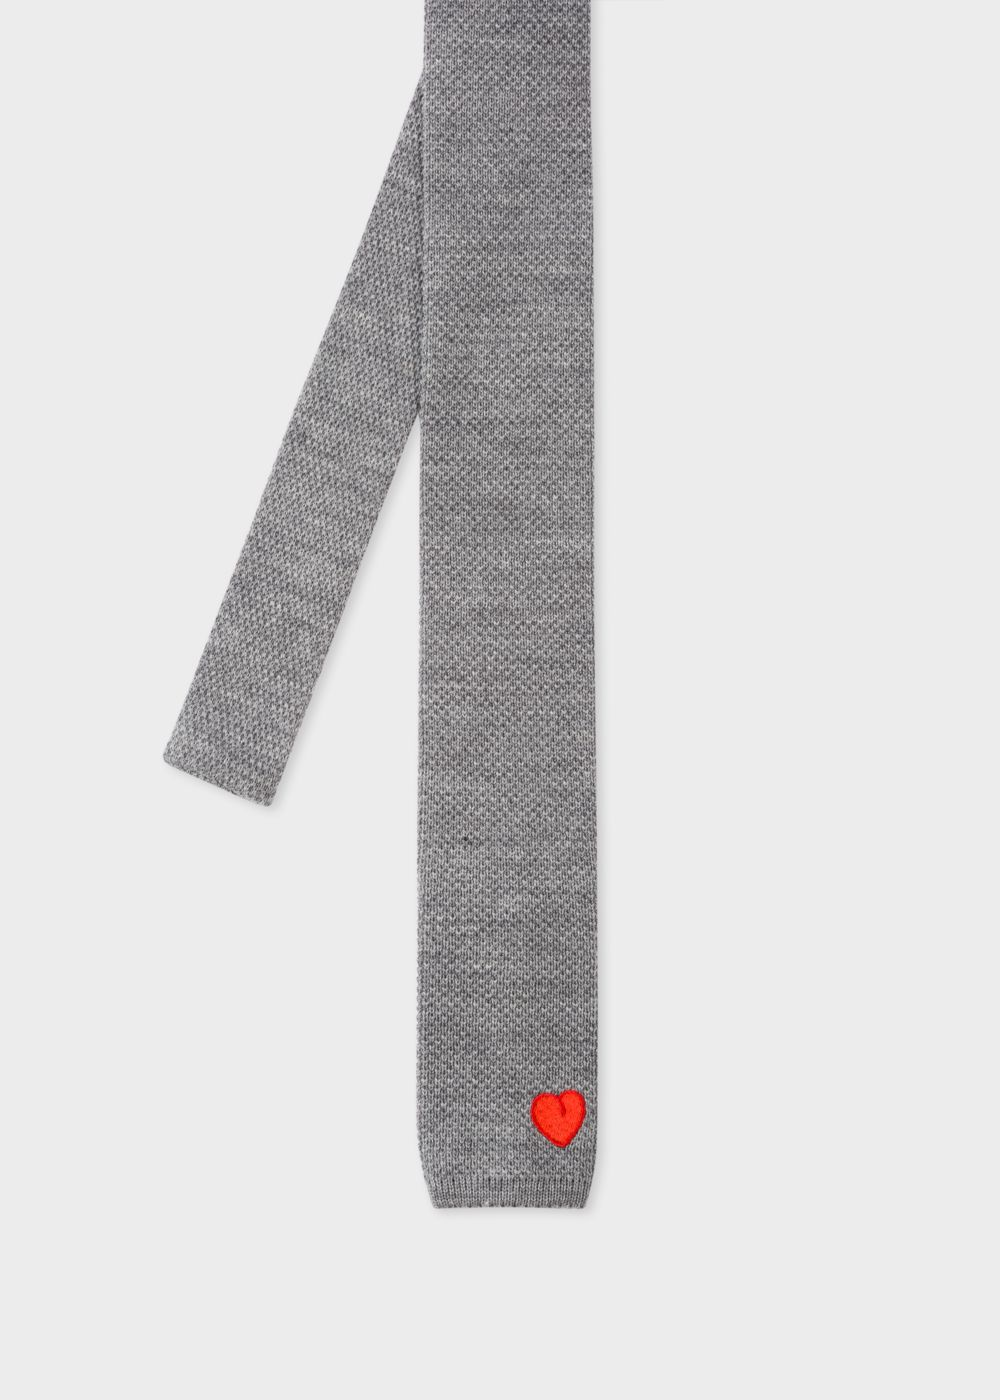 Paul Smith Men's Grey Embroidered 'Heart' Knitted Tie